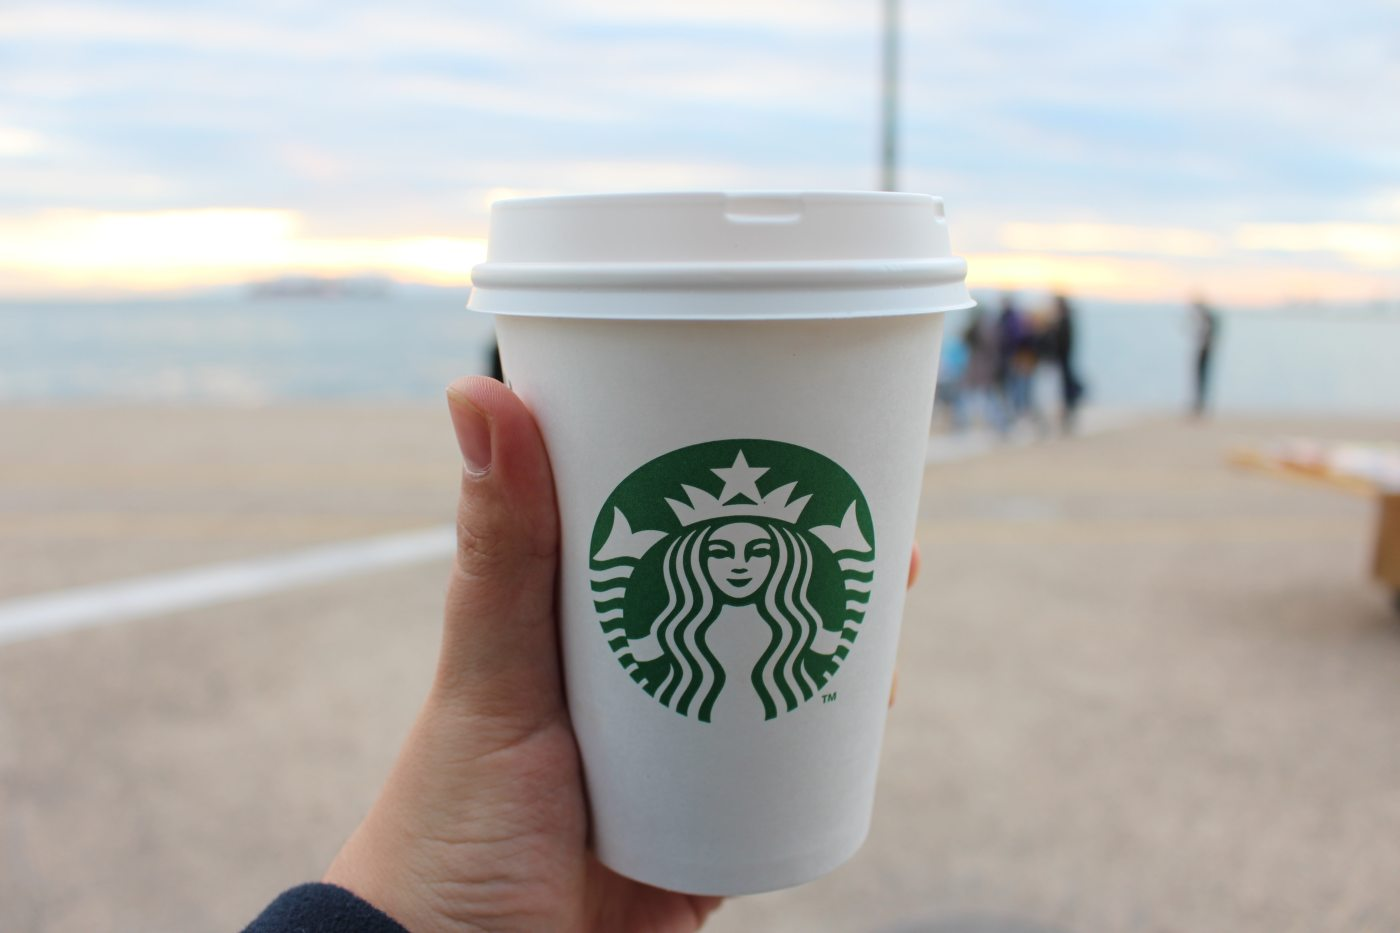 4 Easy Ways To Get Free Starbucks, Amazon, and Target Gift